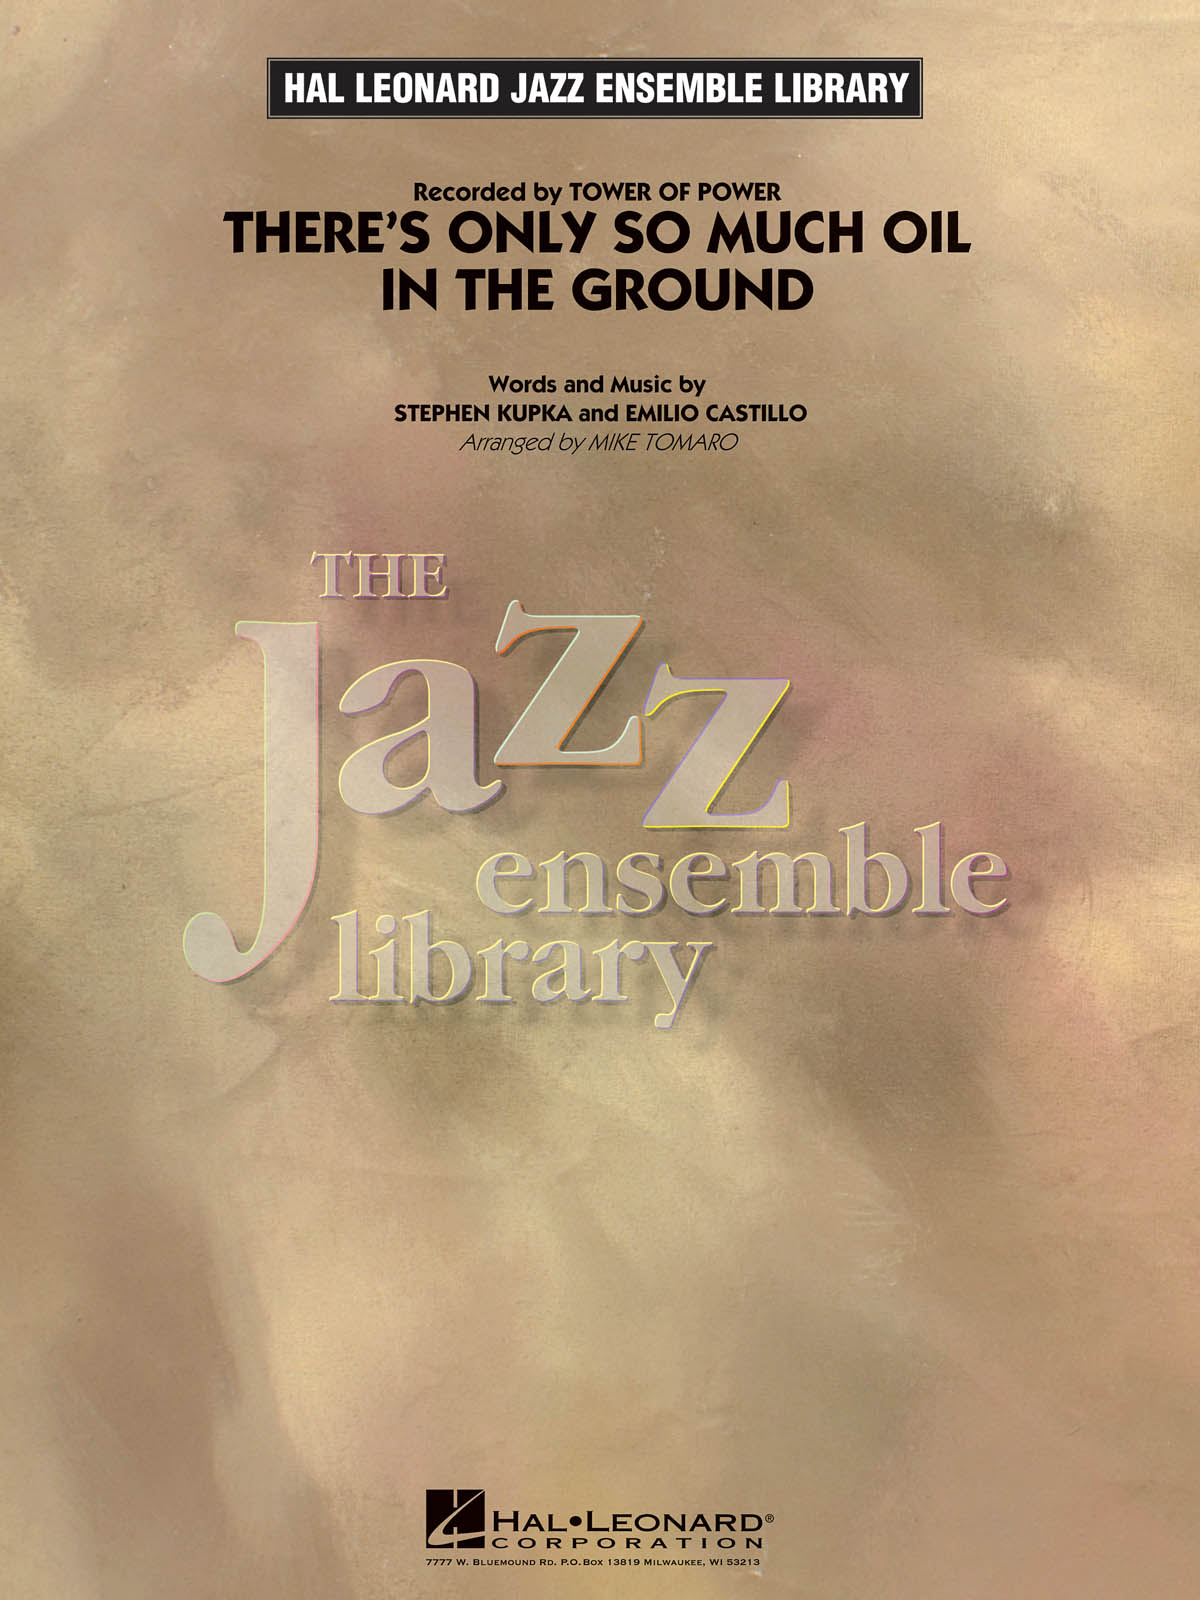 There's Only So Much Oil in the Ground: The Jazz Ensemble Library